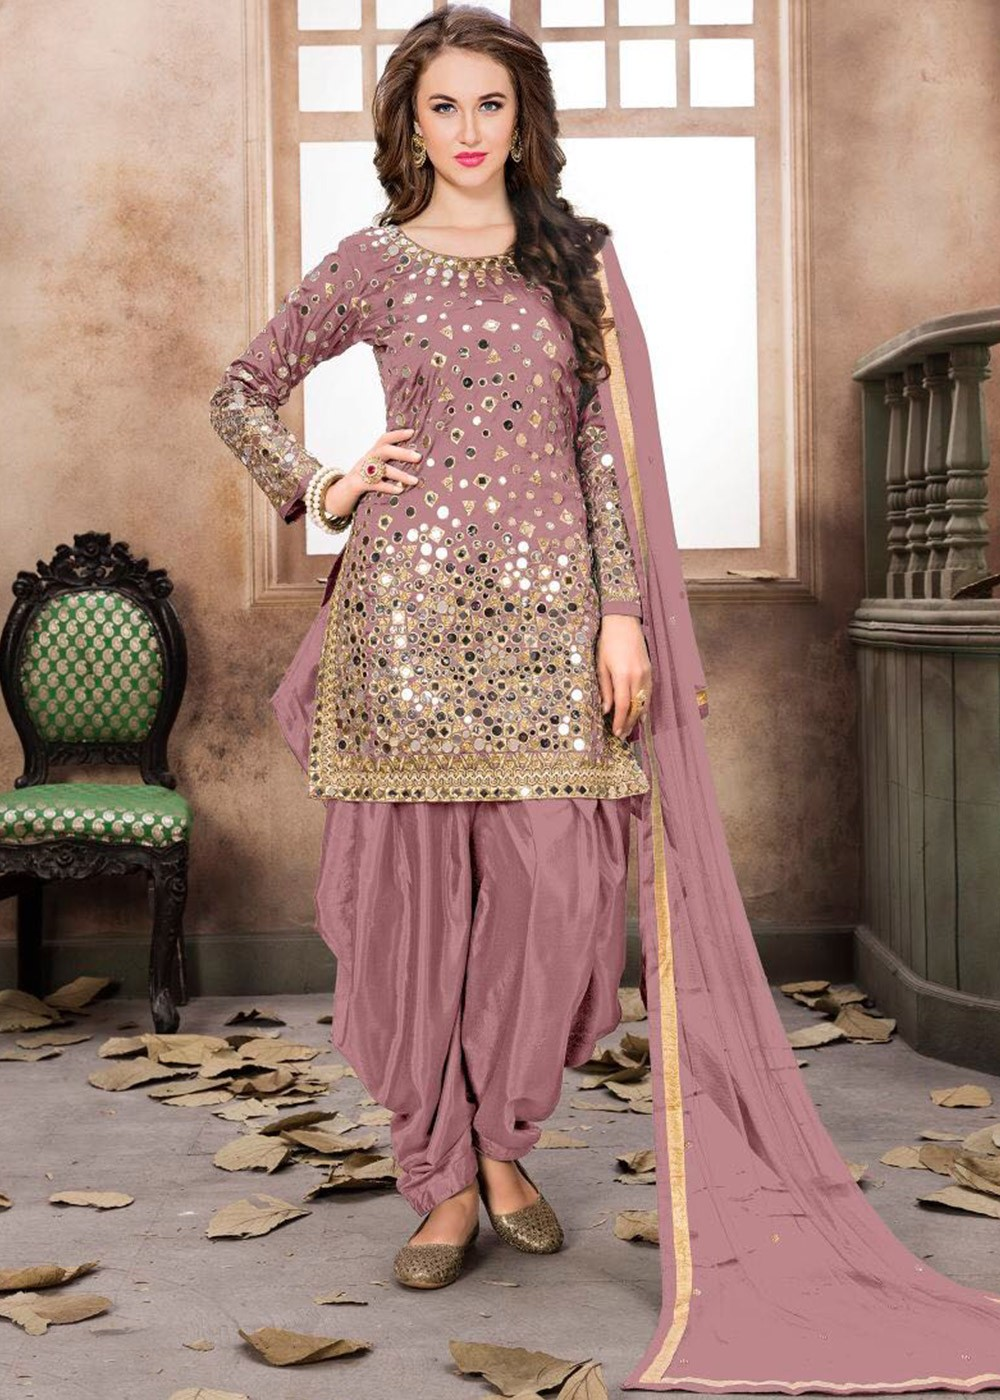 e745522b69 Pastel Pink Punjabi Salwar Suit With Dupatta Most Loved Styles 1986SL03